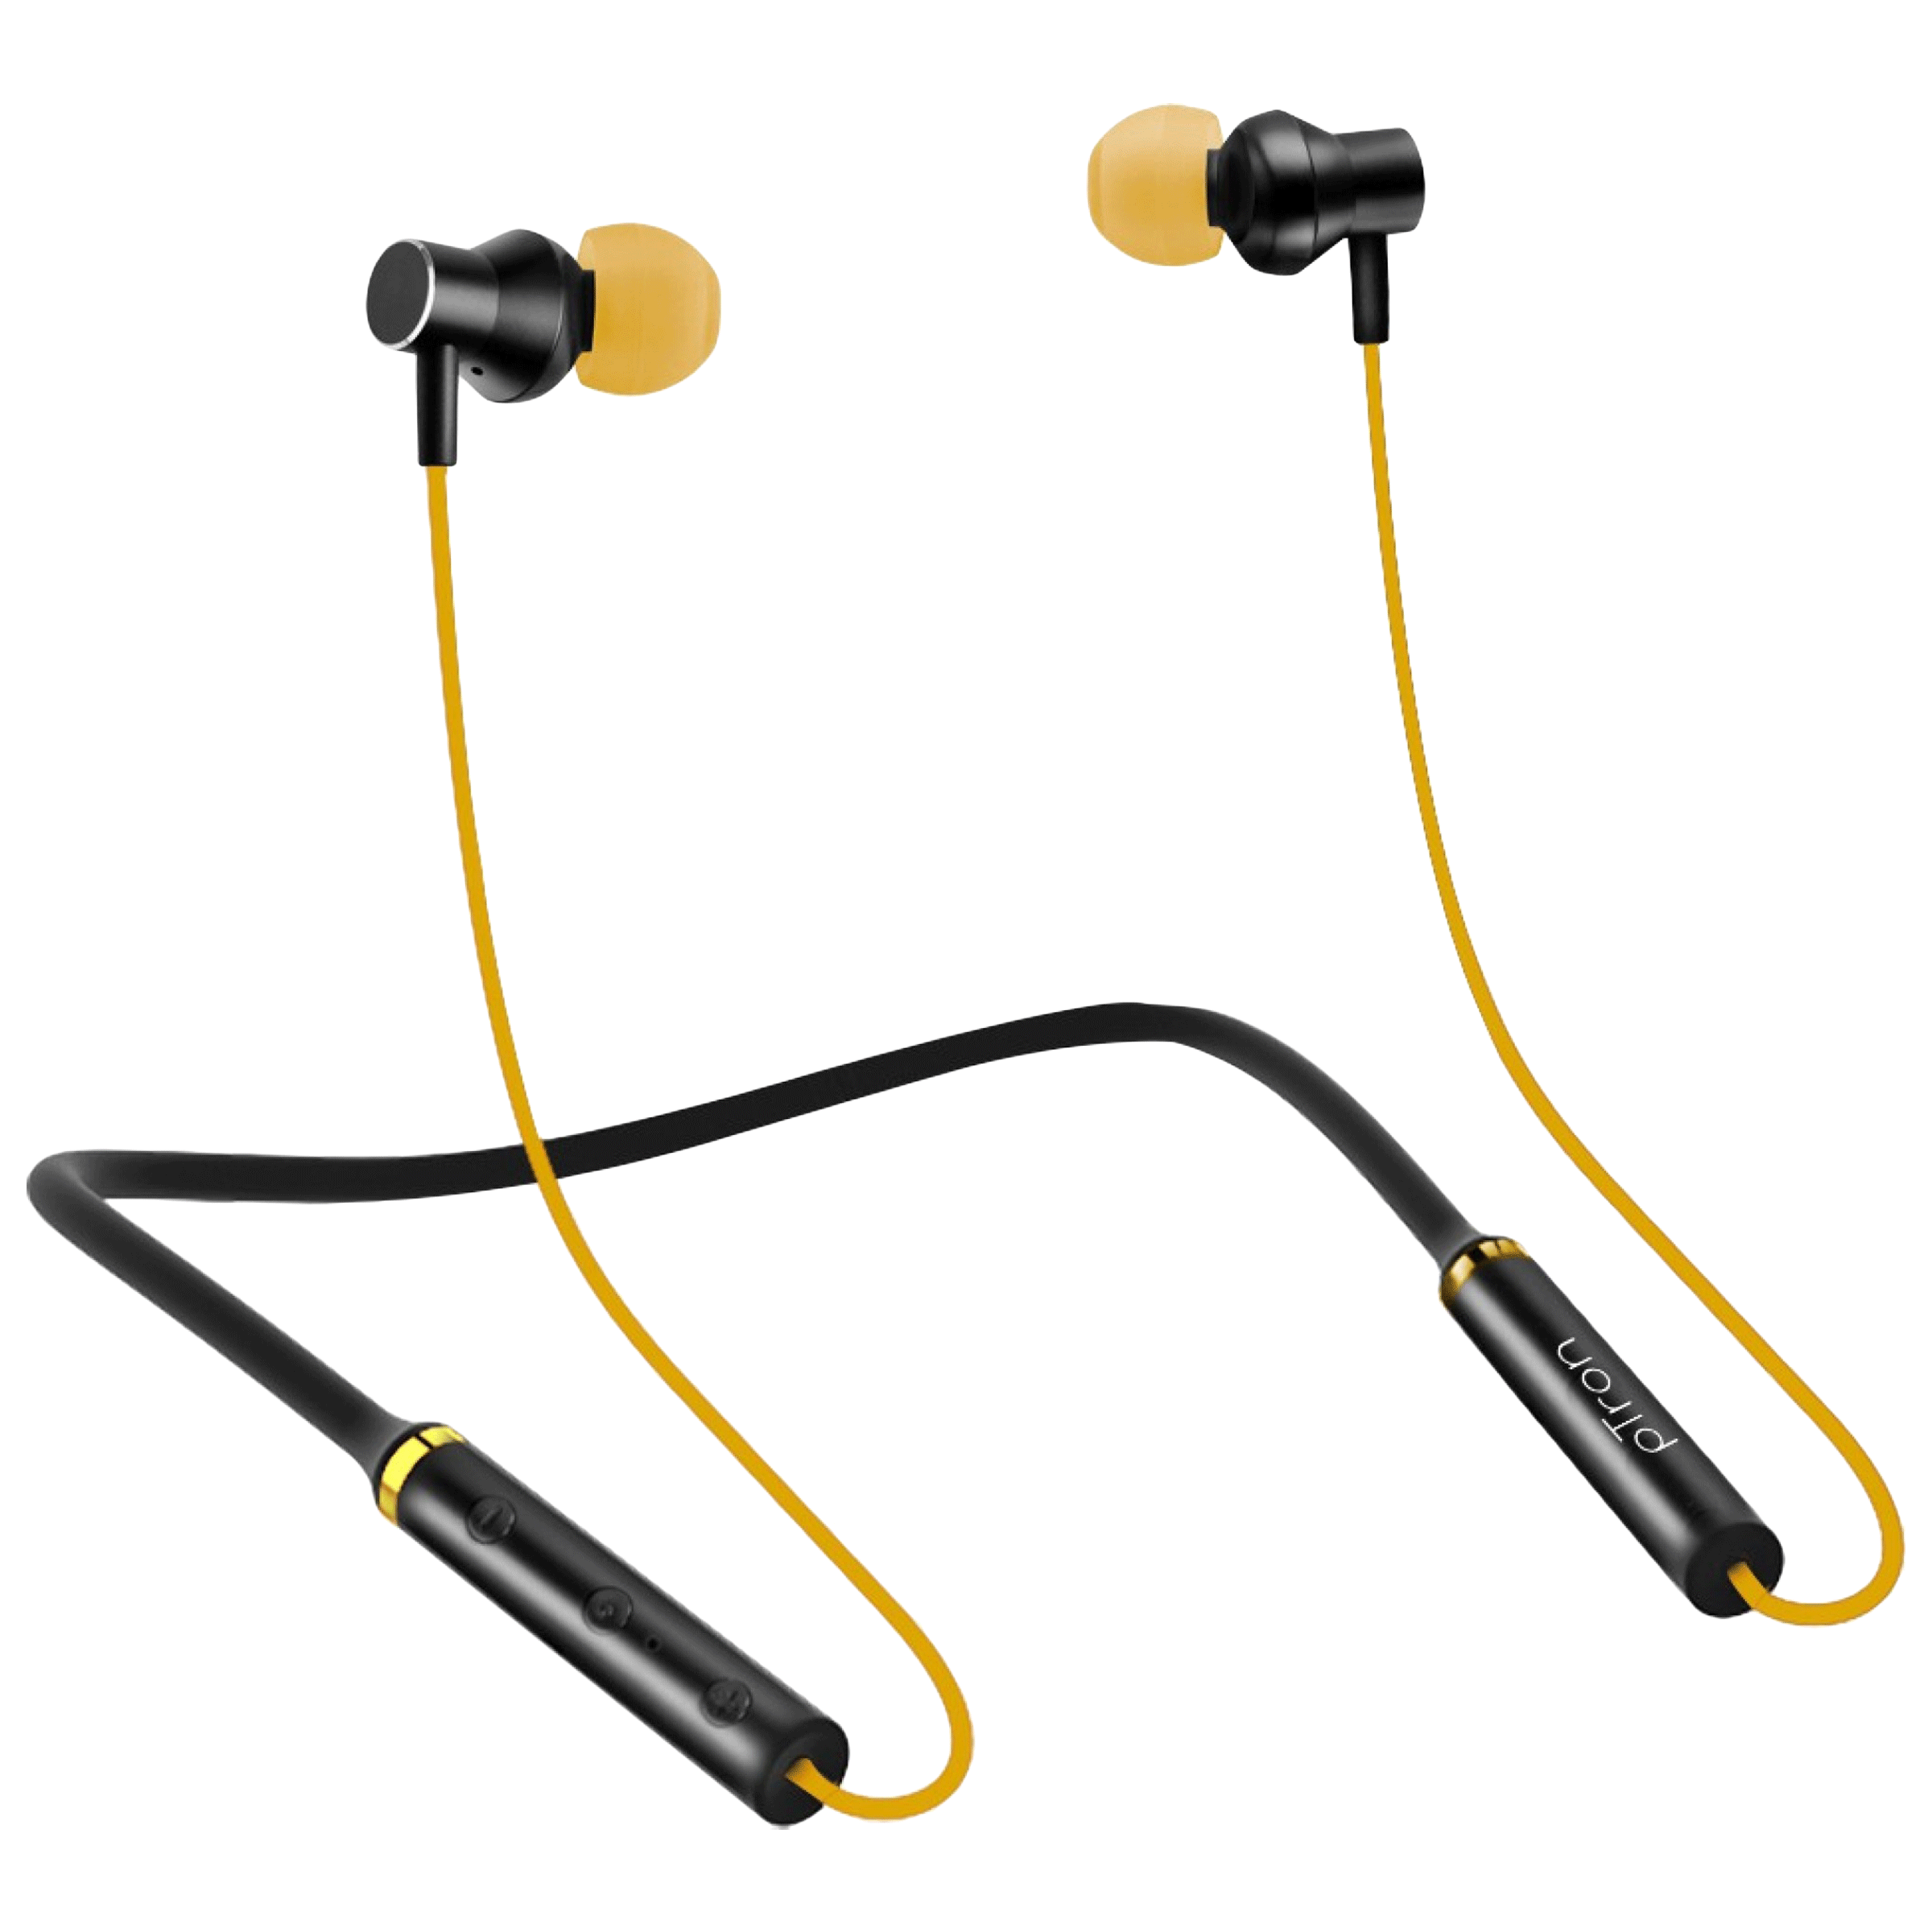 pTron InTunes Beats In-Ear Passive Noise Cancellation Wireless Earphone with Mic (Bluetooth 5.0, Magnetic Locking, 140317888, Black/Yellow)_1